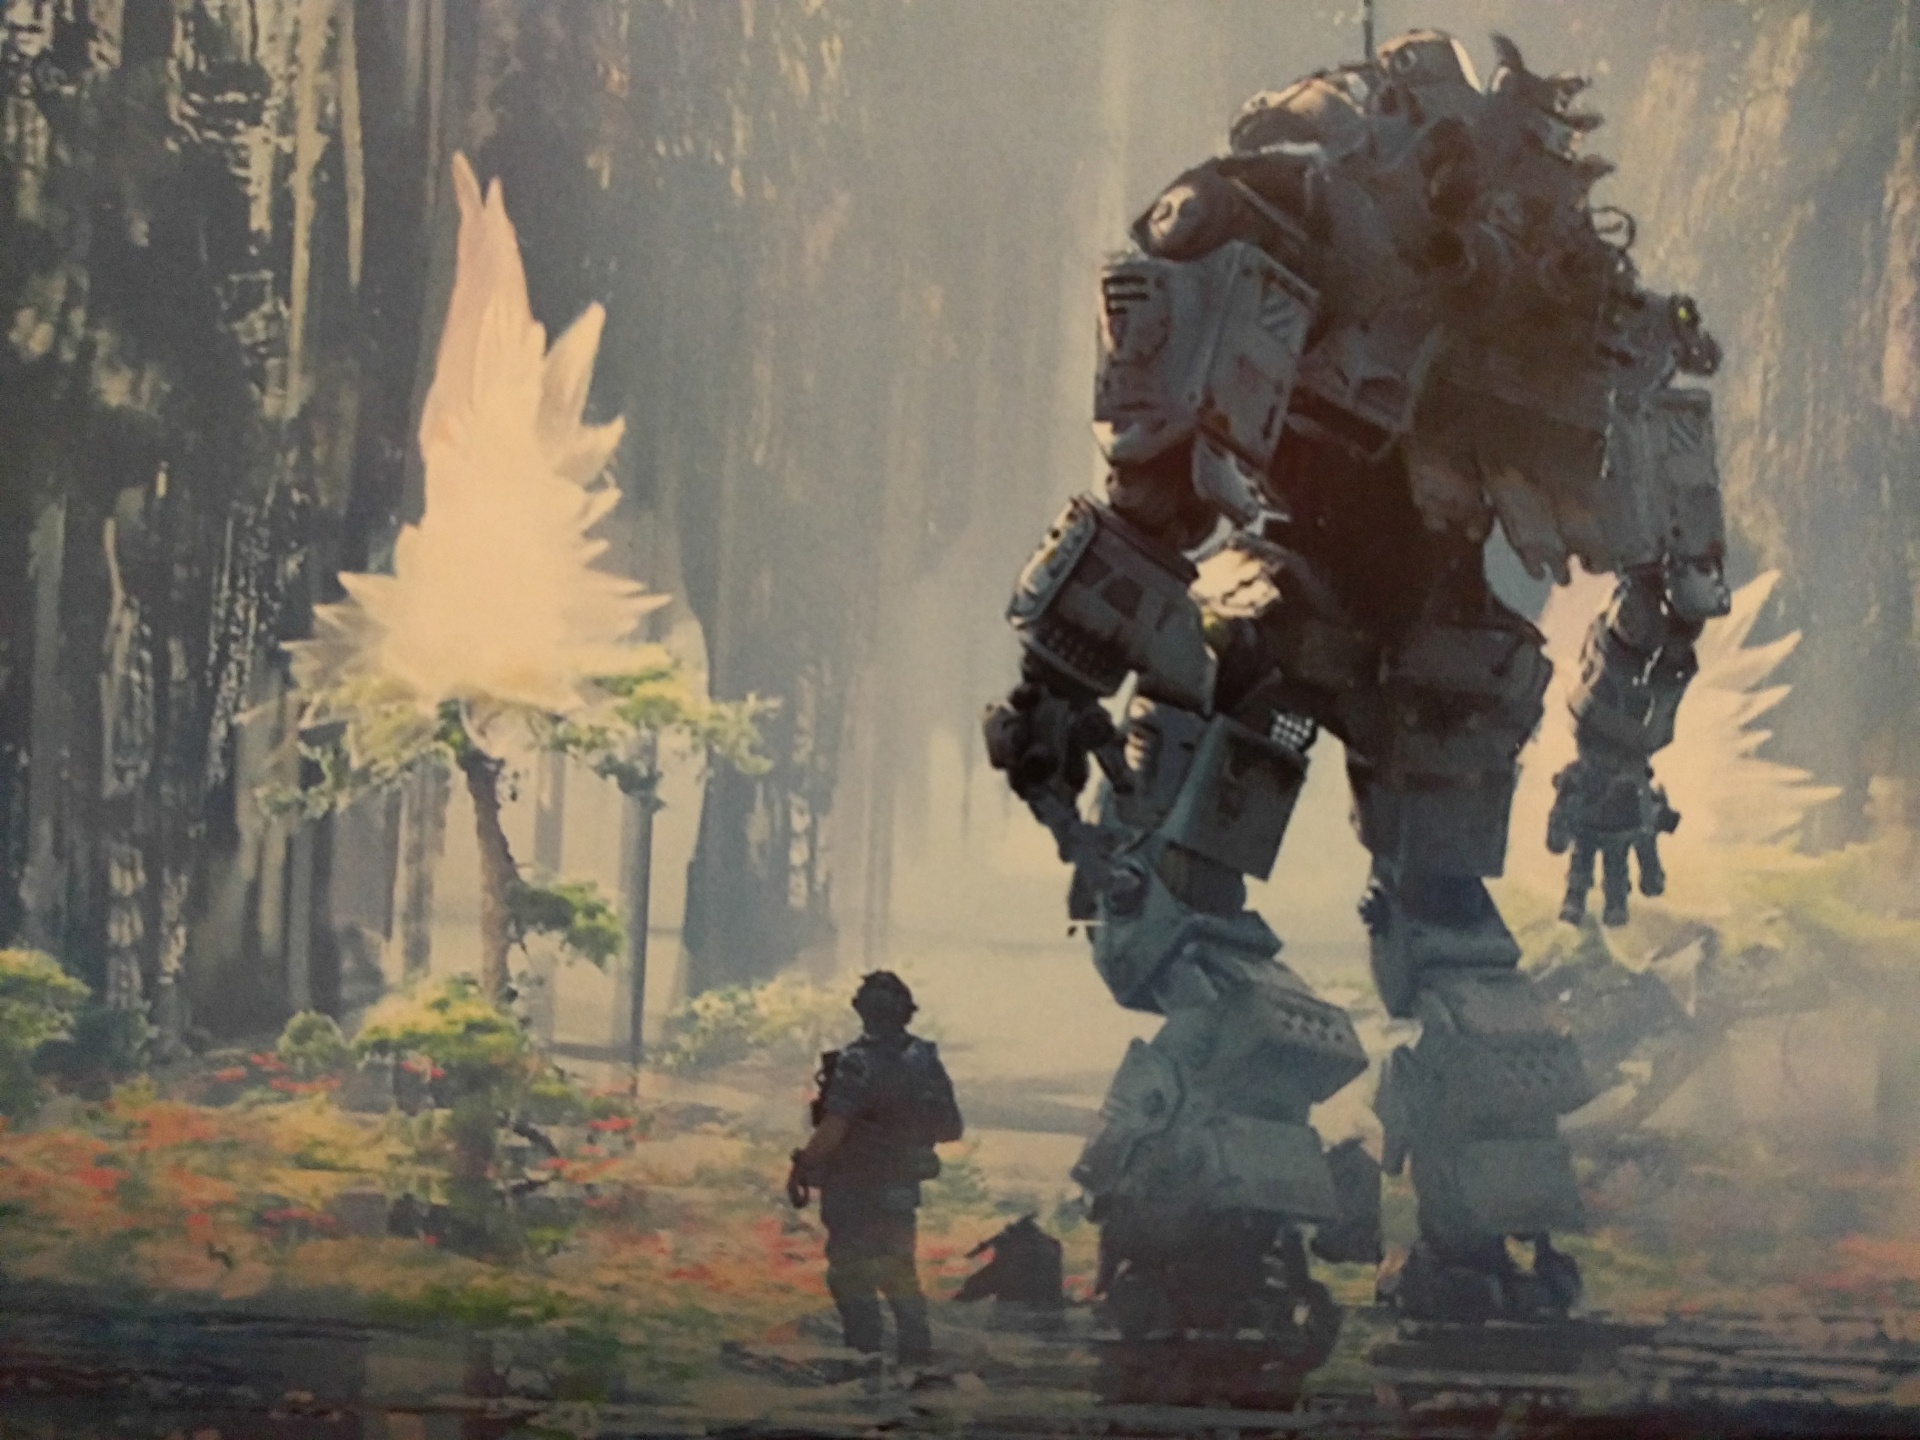 Bt Stands For Best Titan The Art Of Titanfall 2 Review